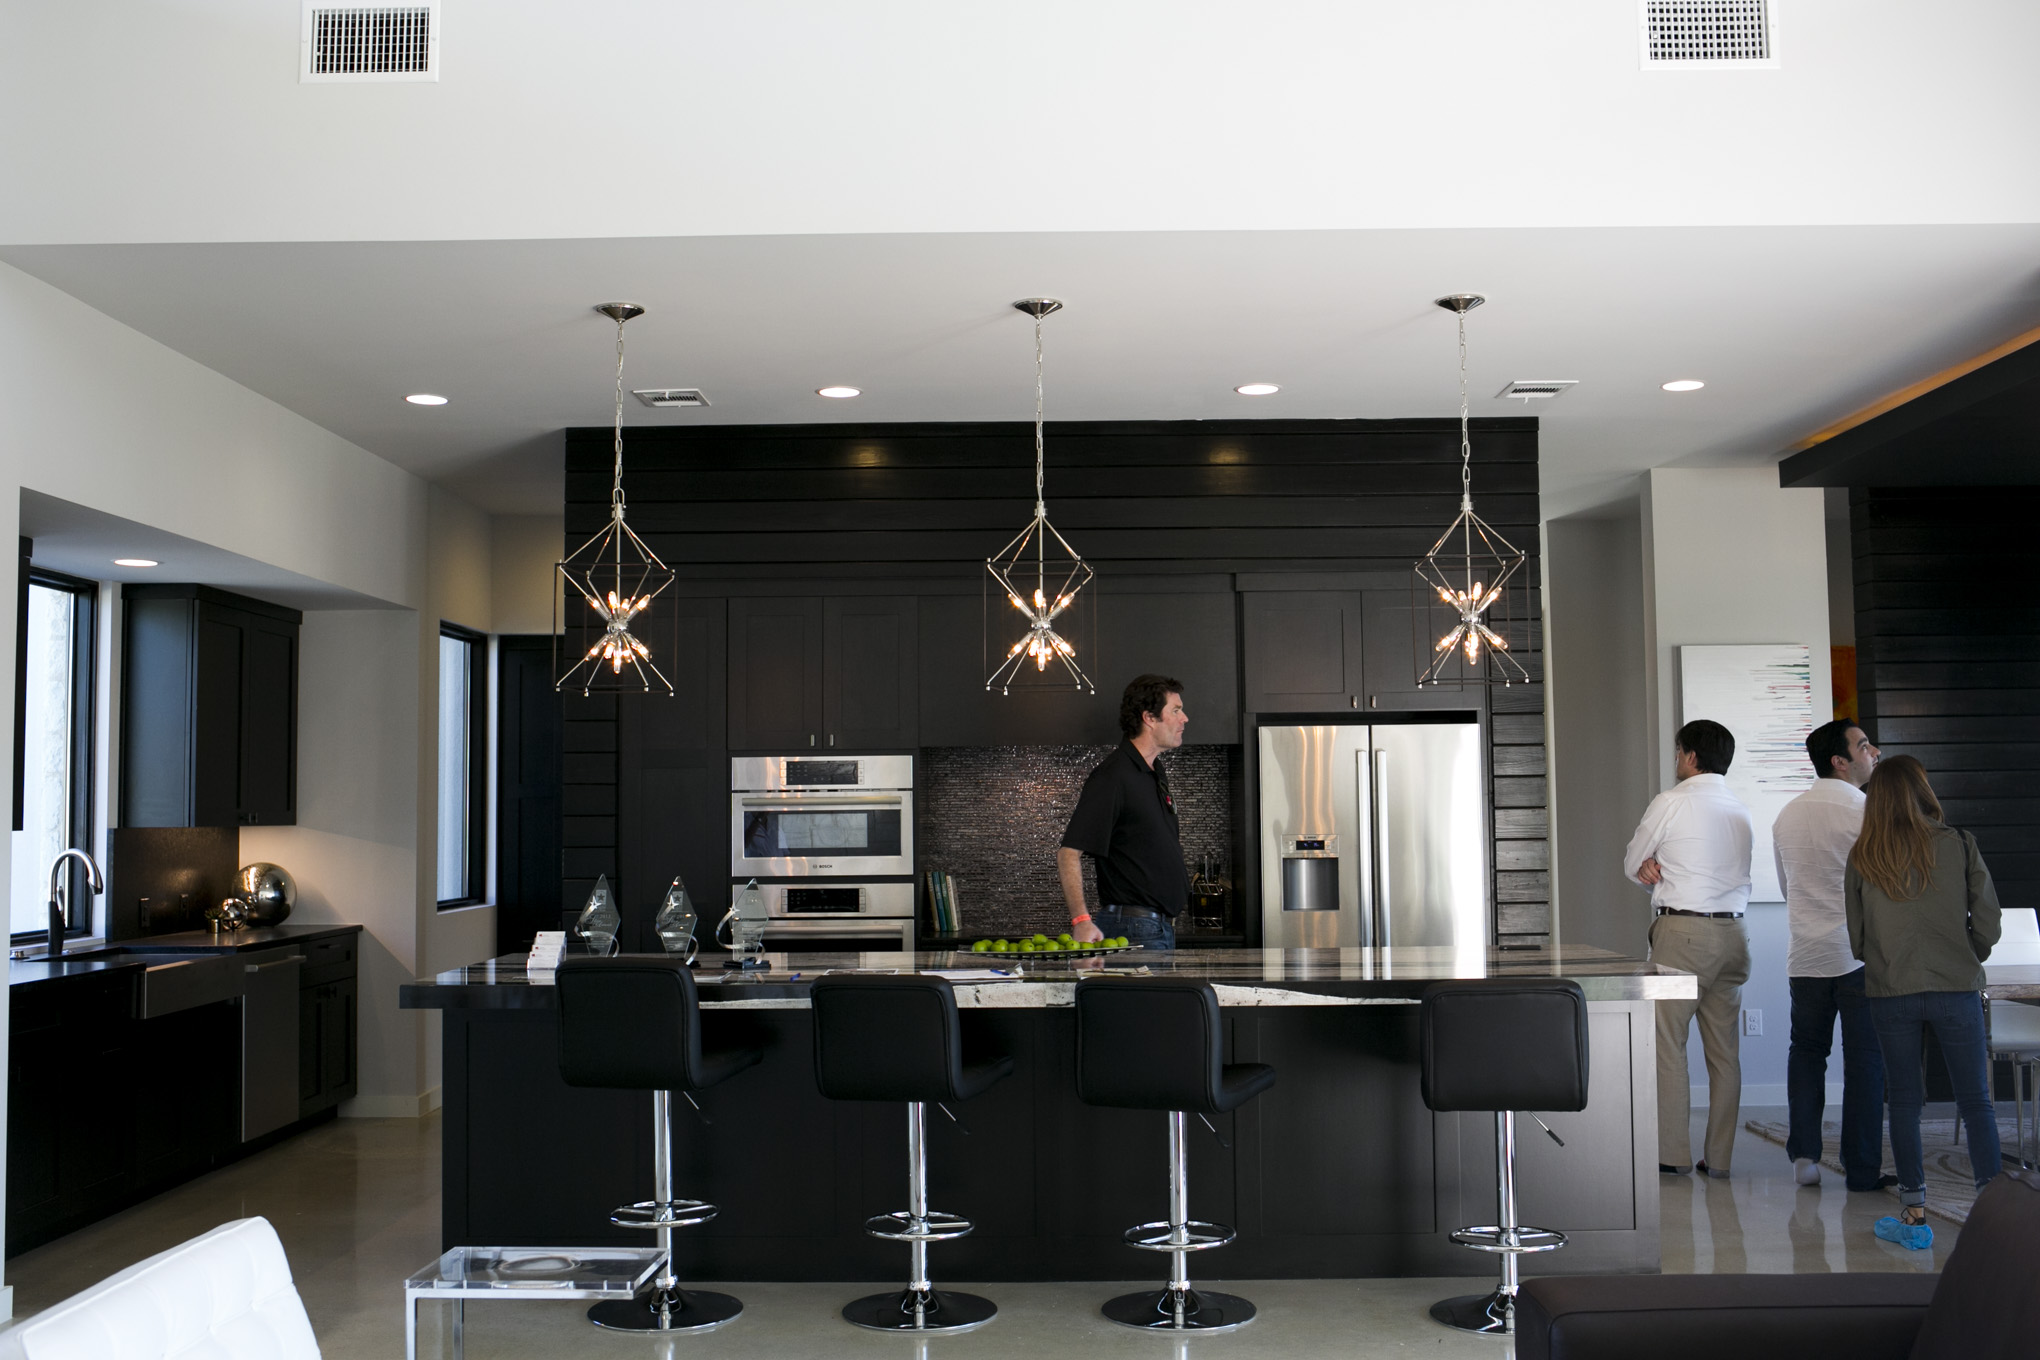 The kitchen of 23421 Edens Canyon in The Canyons at Scenic Loop.